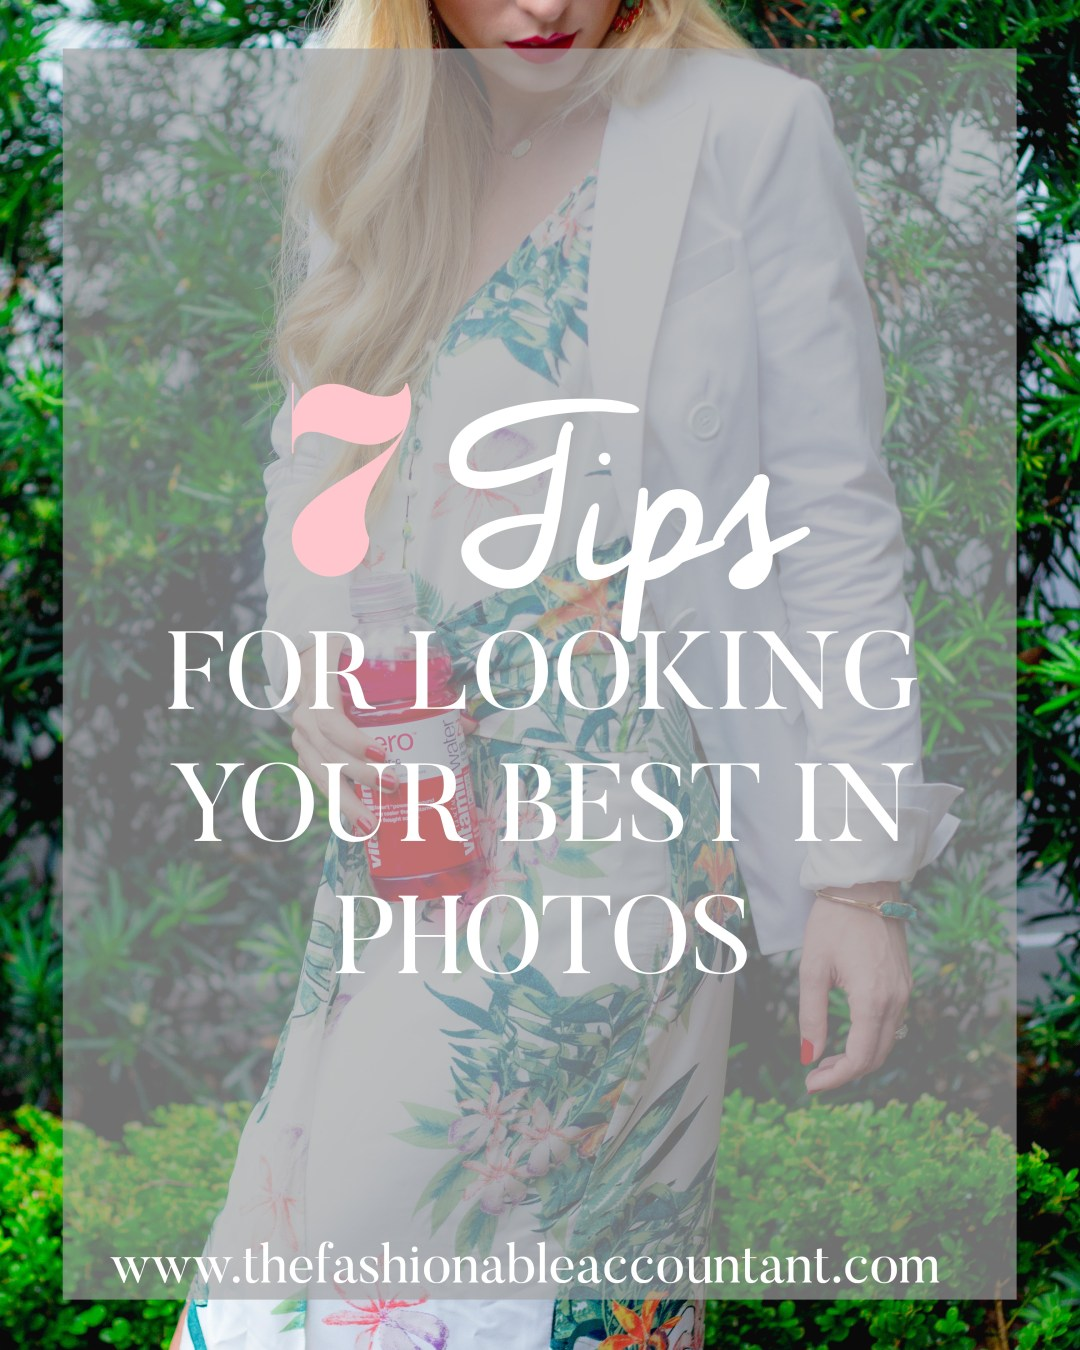 7 TIPS FOR LOOKING YOUR BEST IN PHOTOS